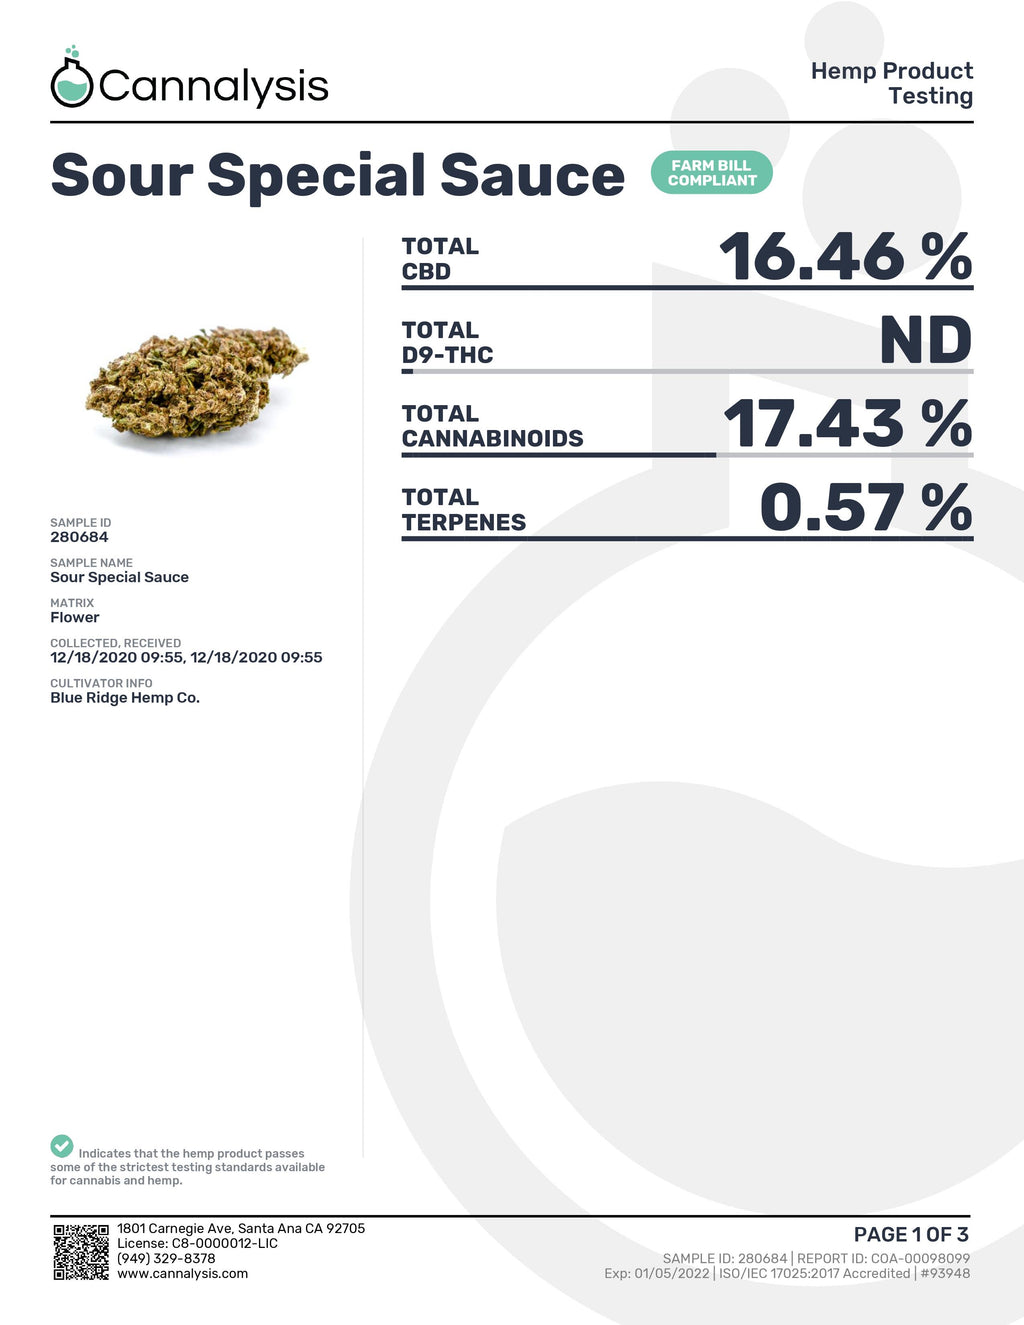 SOUR Special Sauce Strain Blue Ridge Selects Flower (NEW)